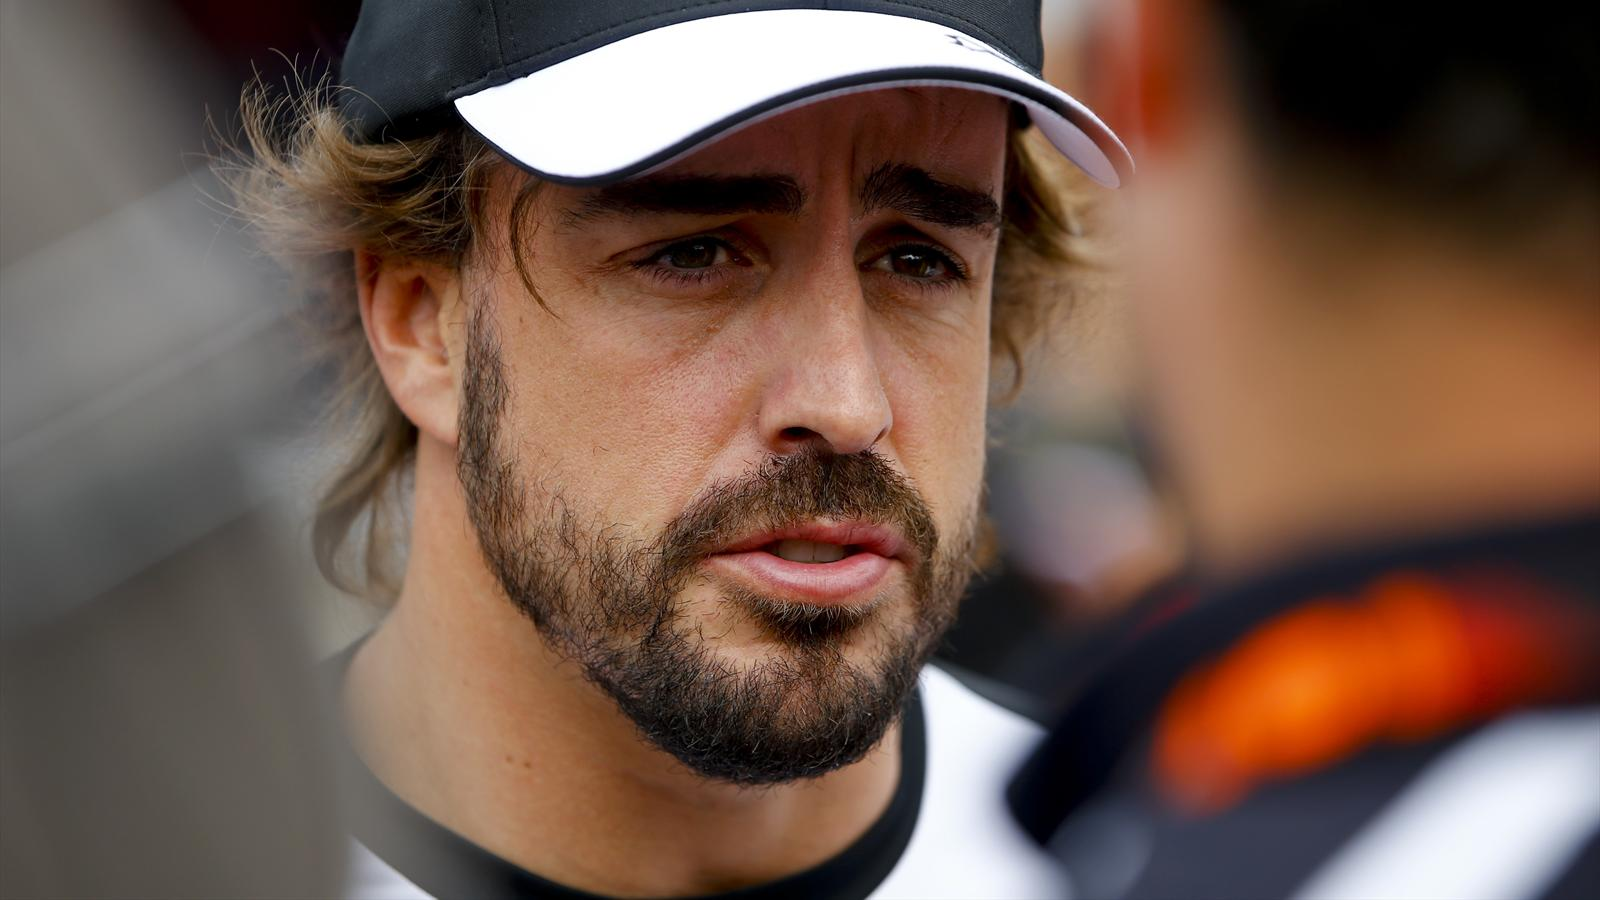 McLaren driver Fernando Alonso in the paddock at the Austrian Grand Prix